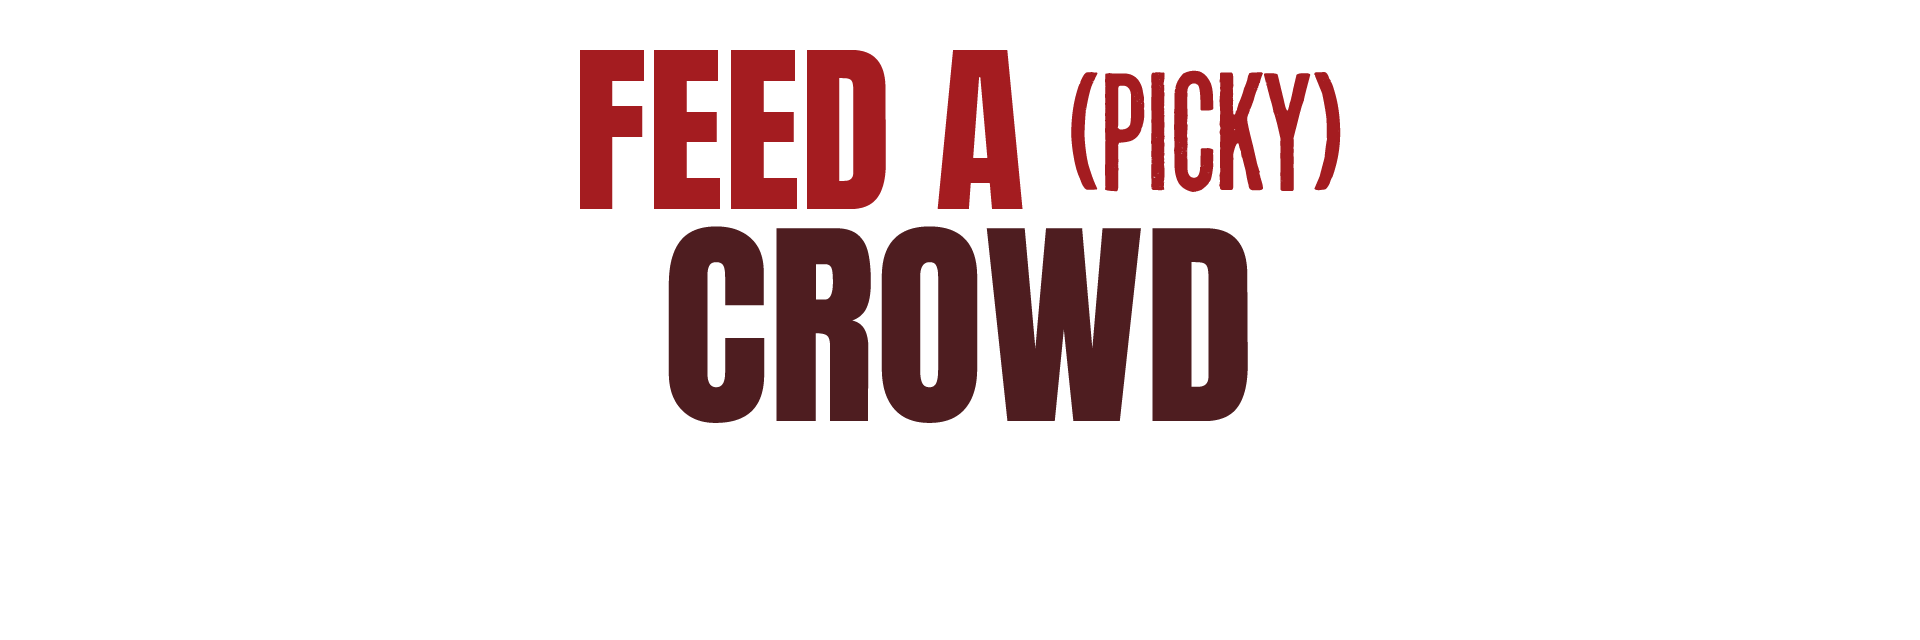 Feed a Picky Crowd